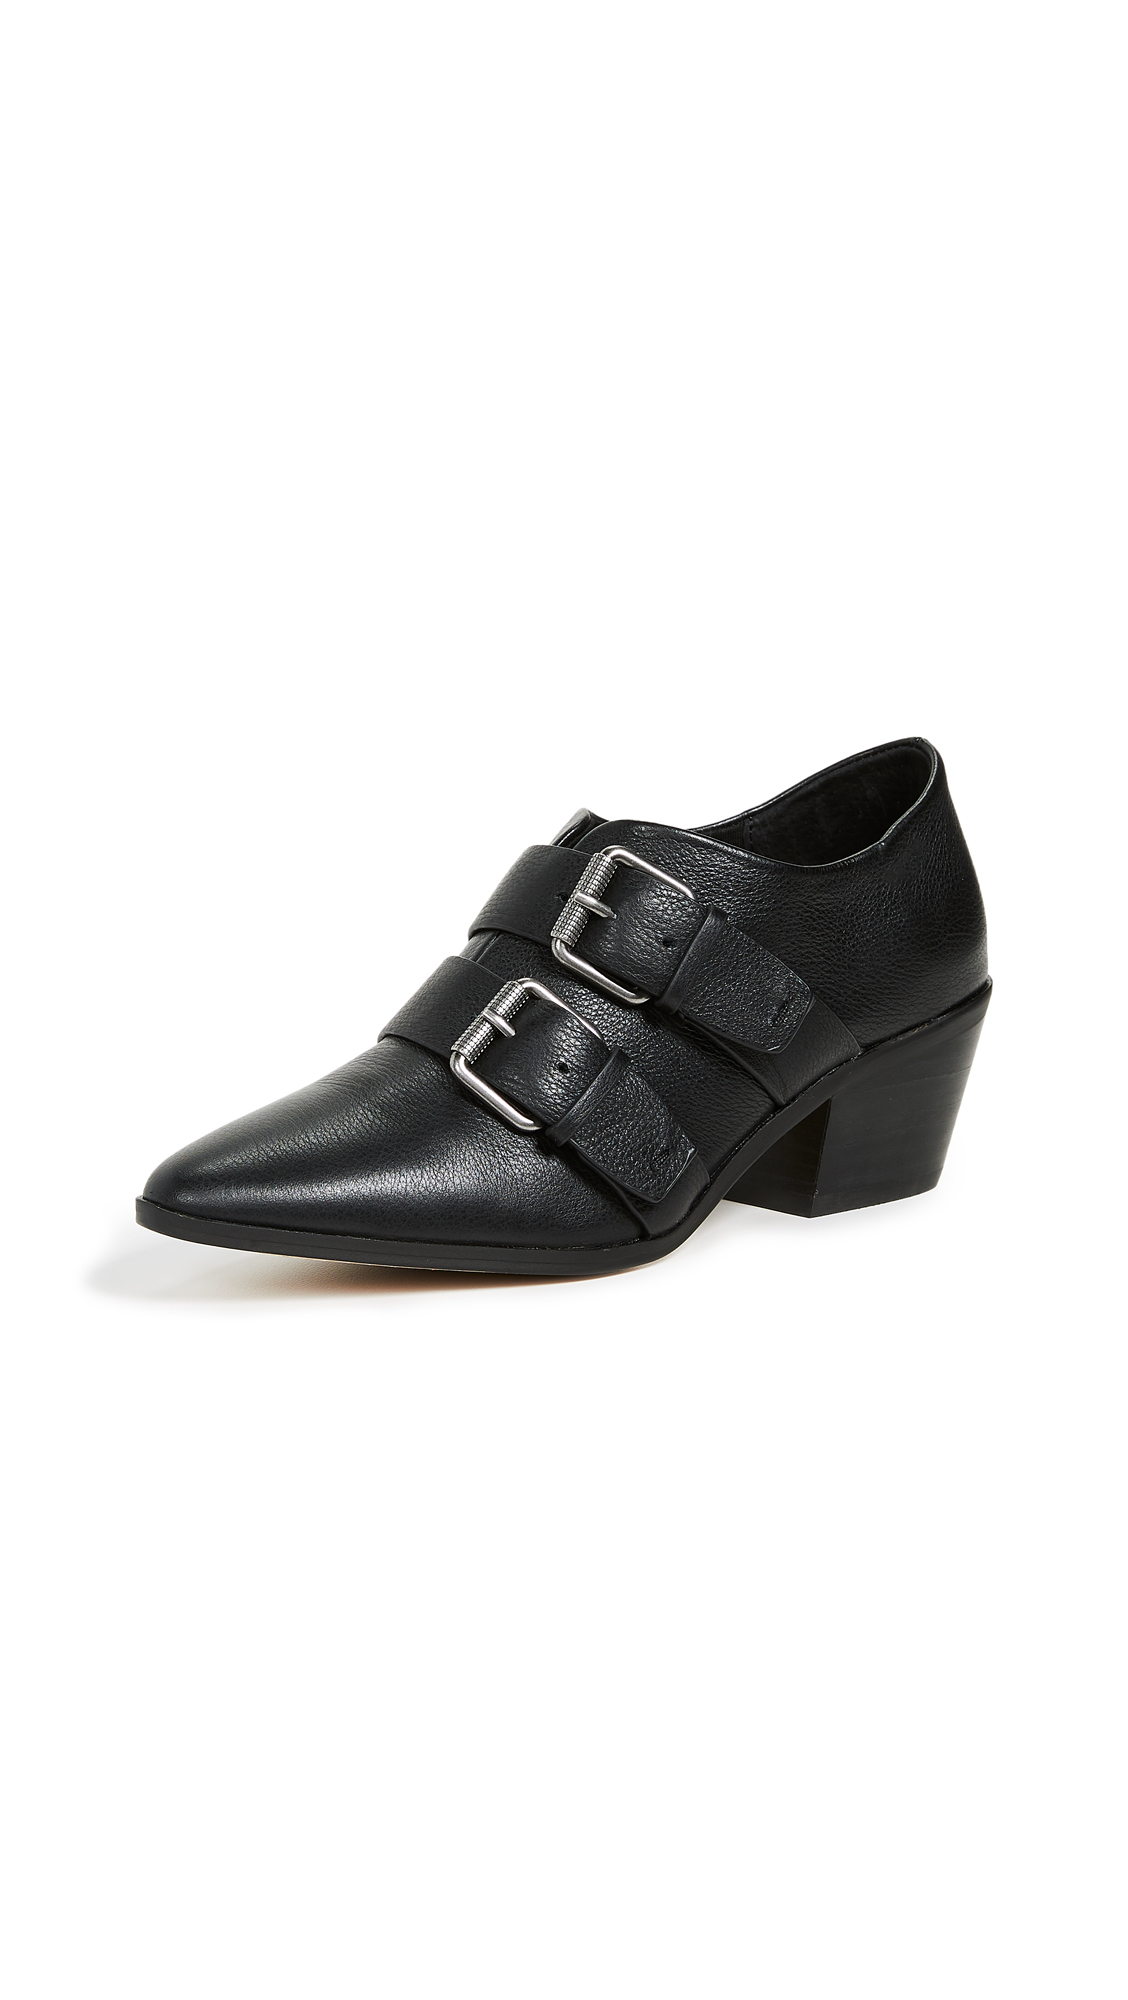 Splendid Carla Point Toe Booties - Black